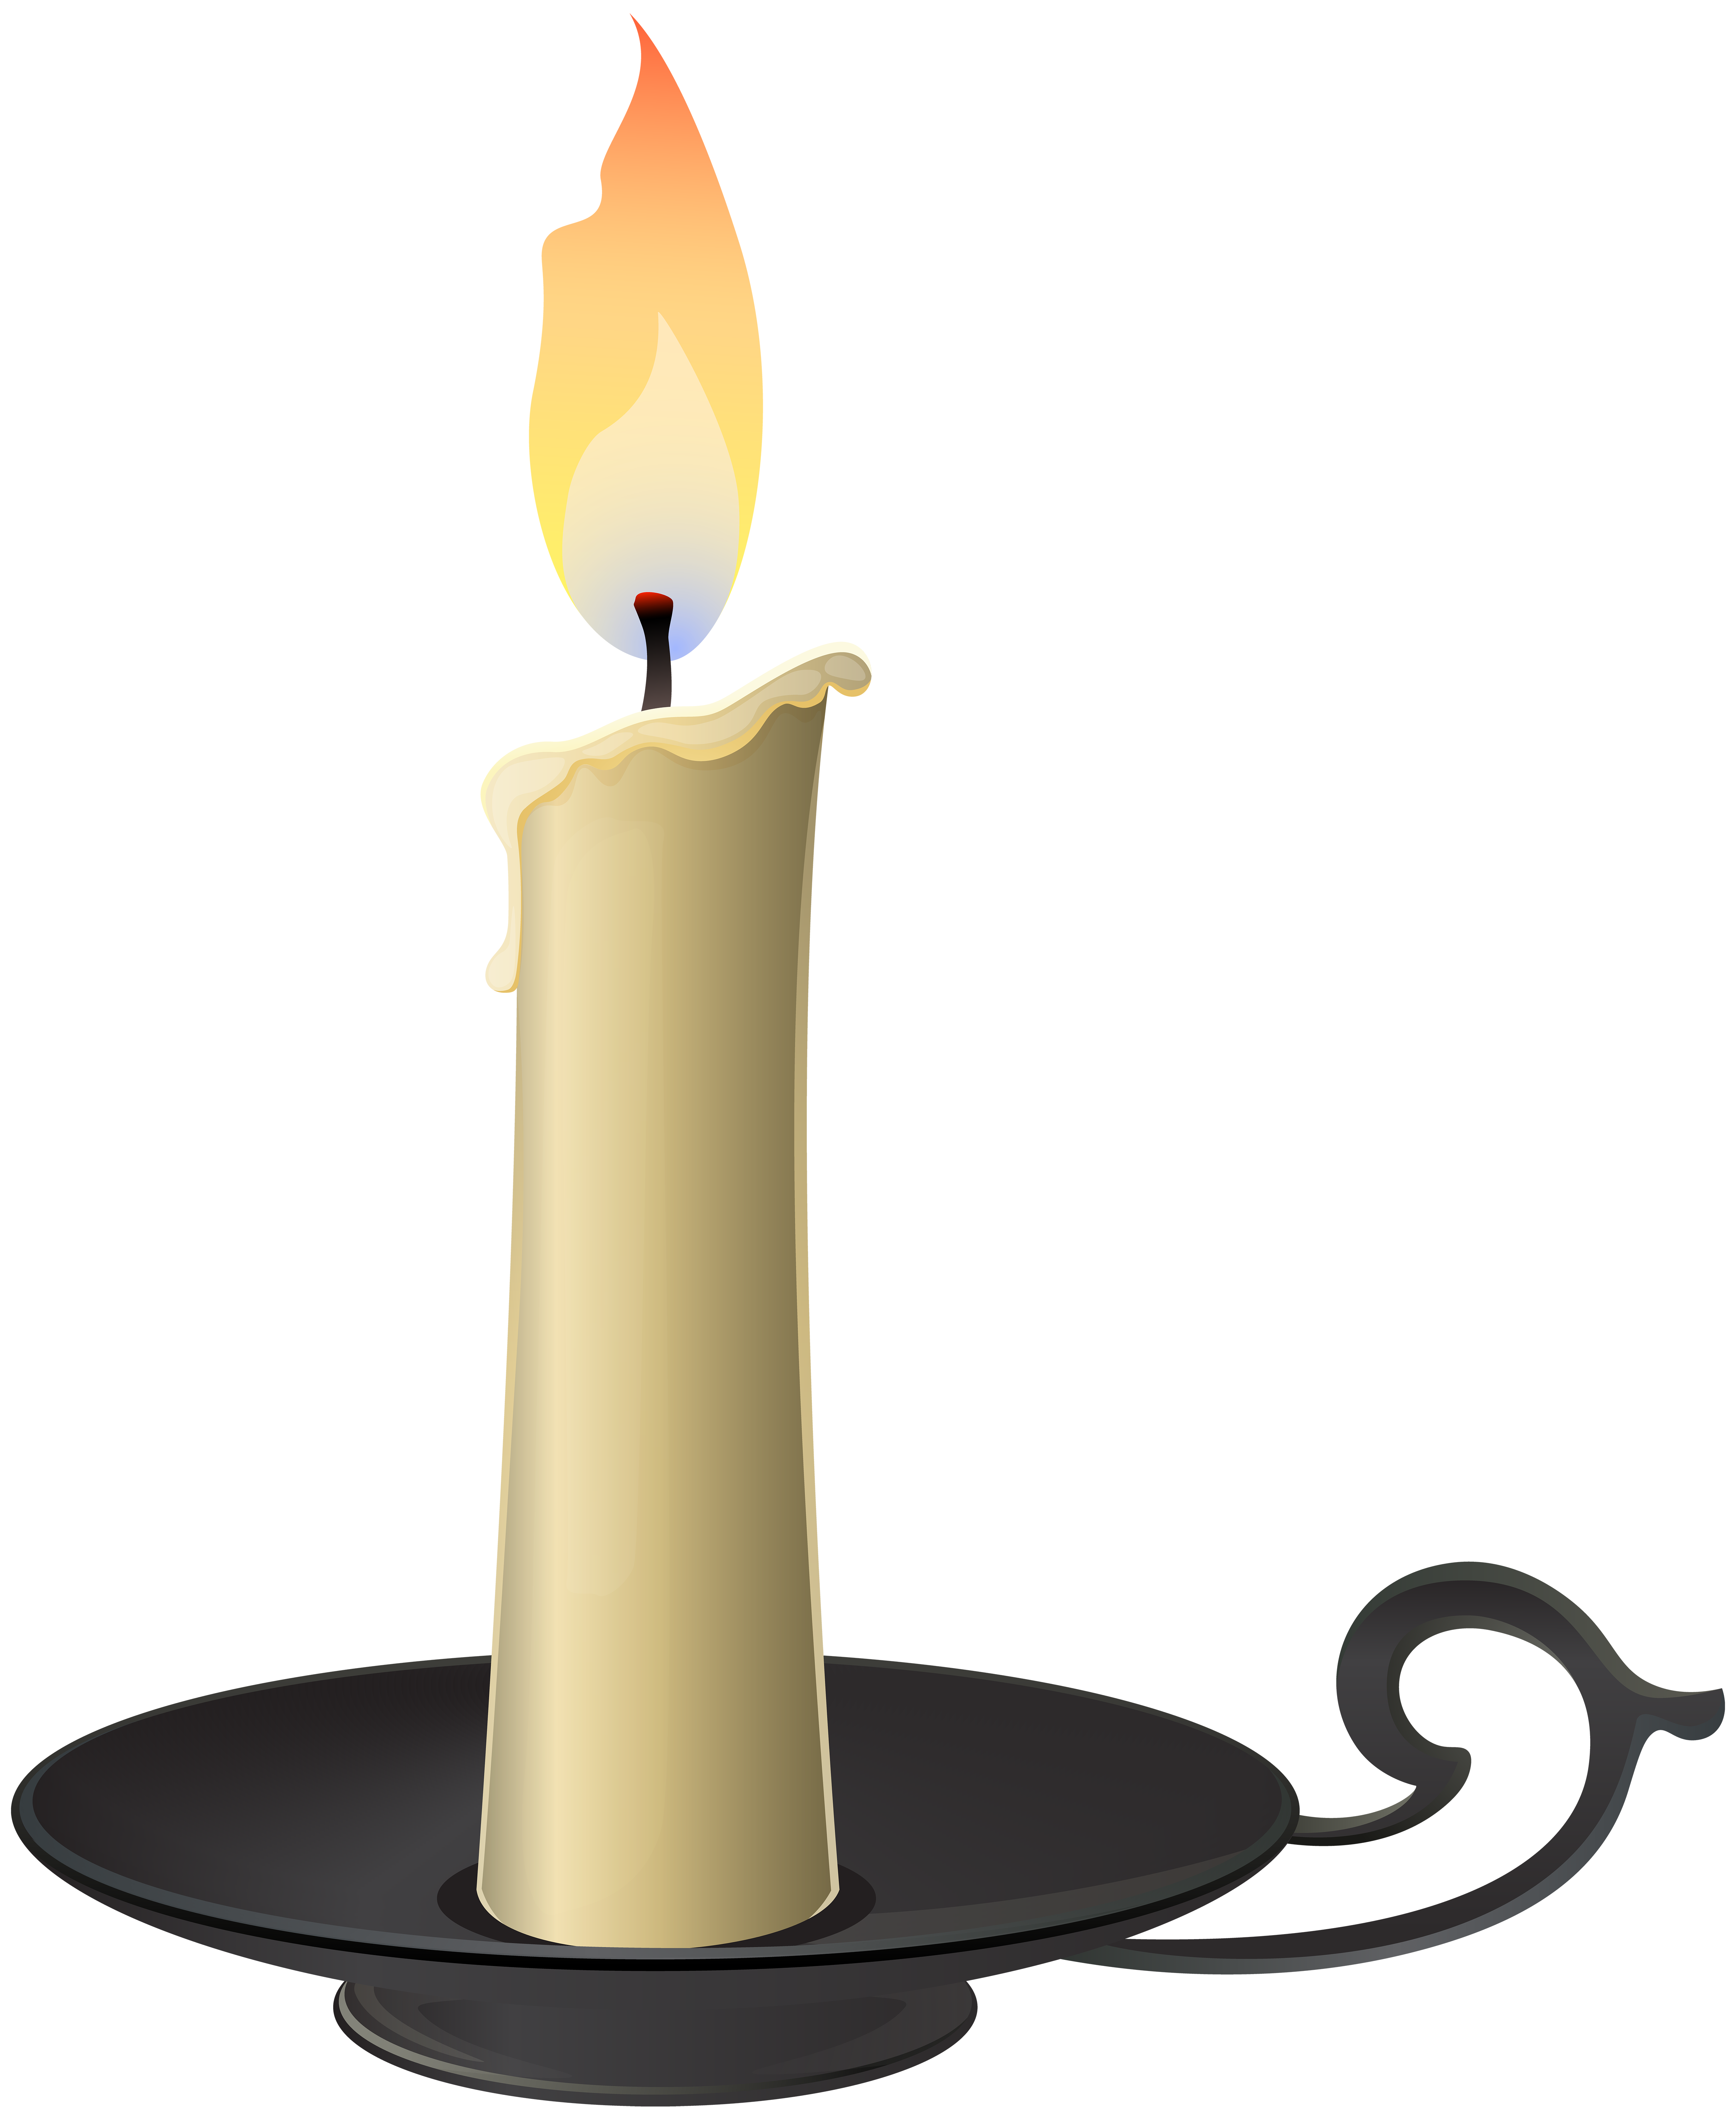 svg free download Clock clipart candle. Candlestick png clip art.